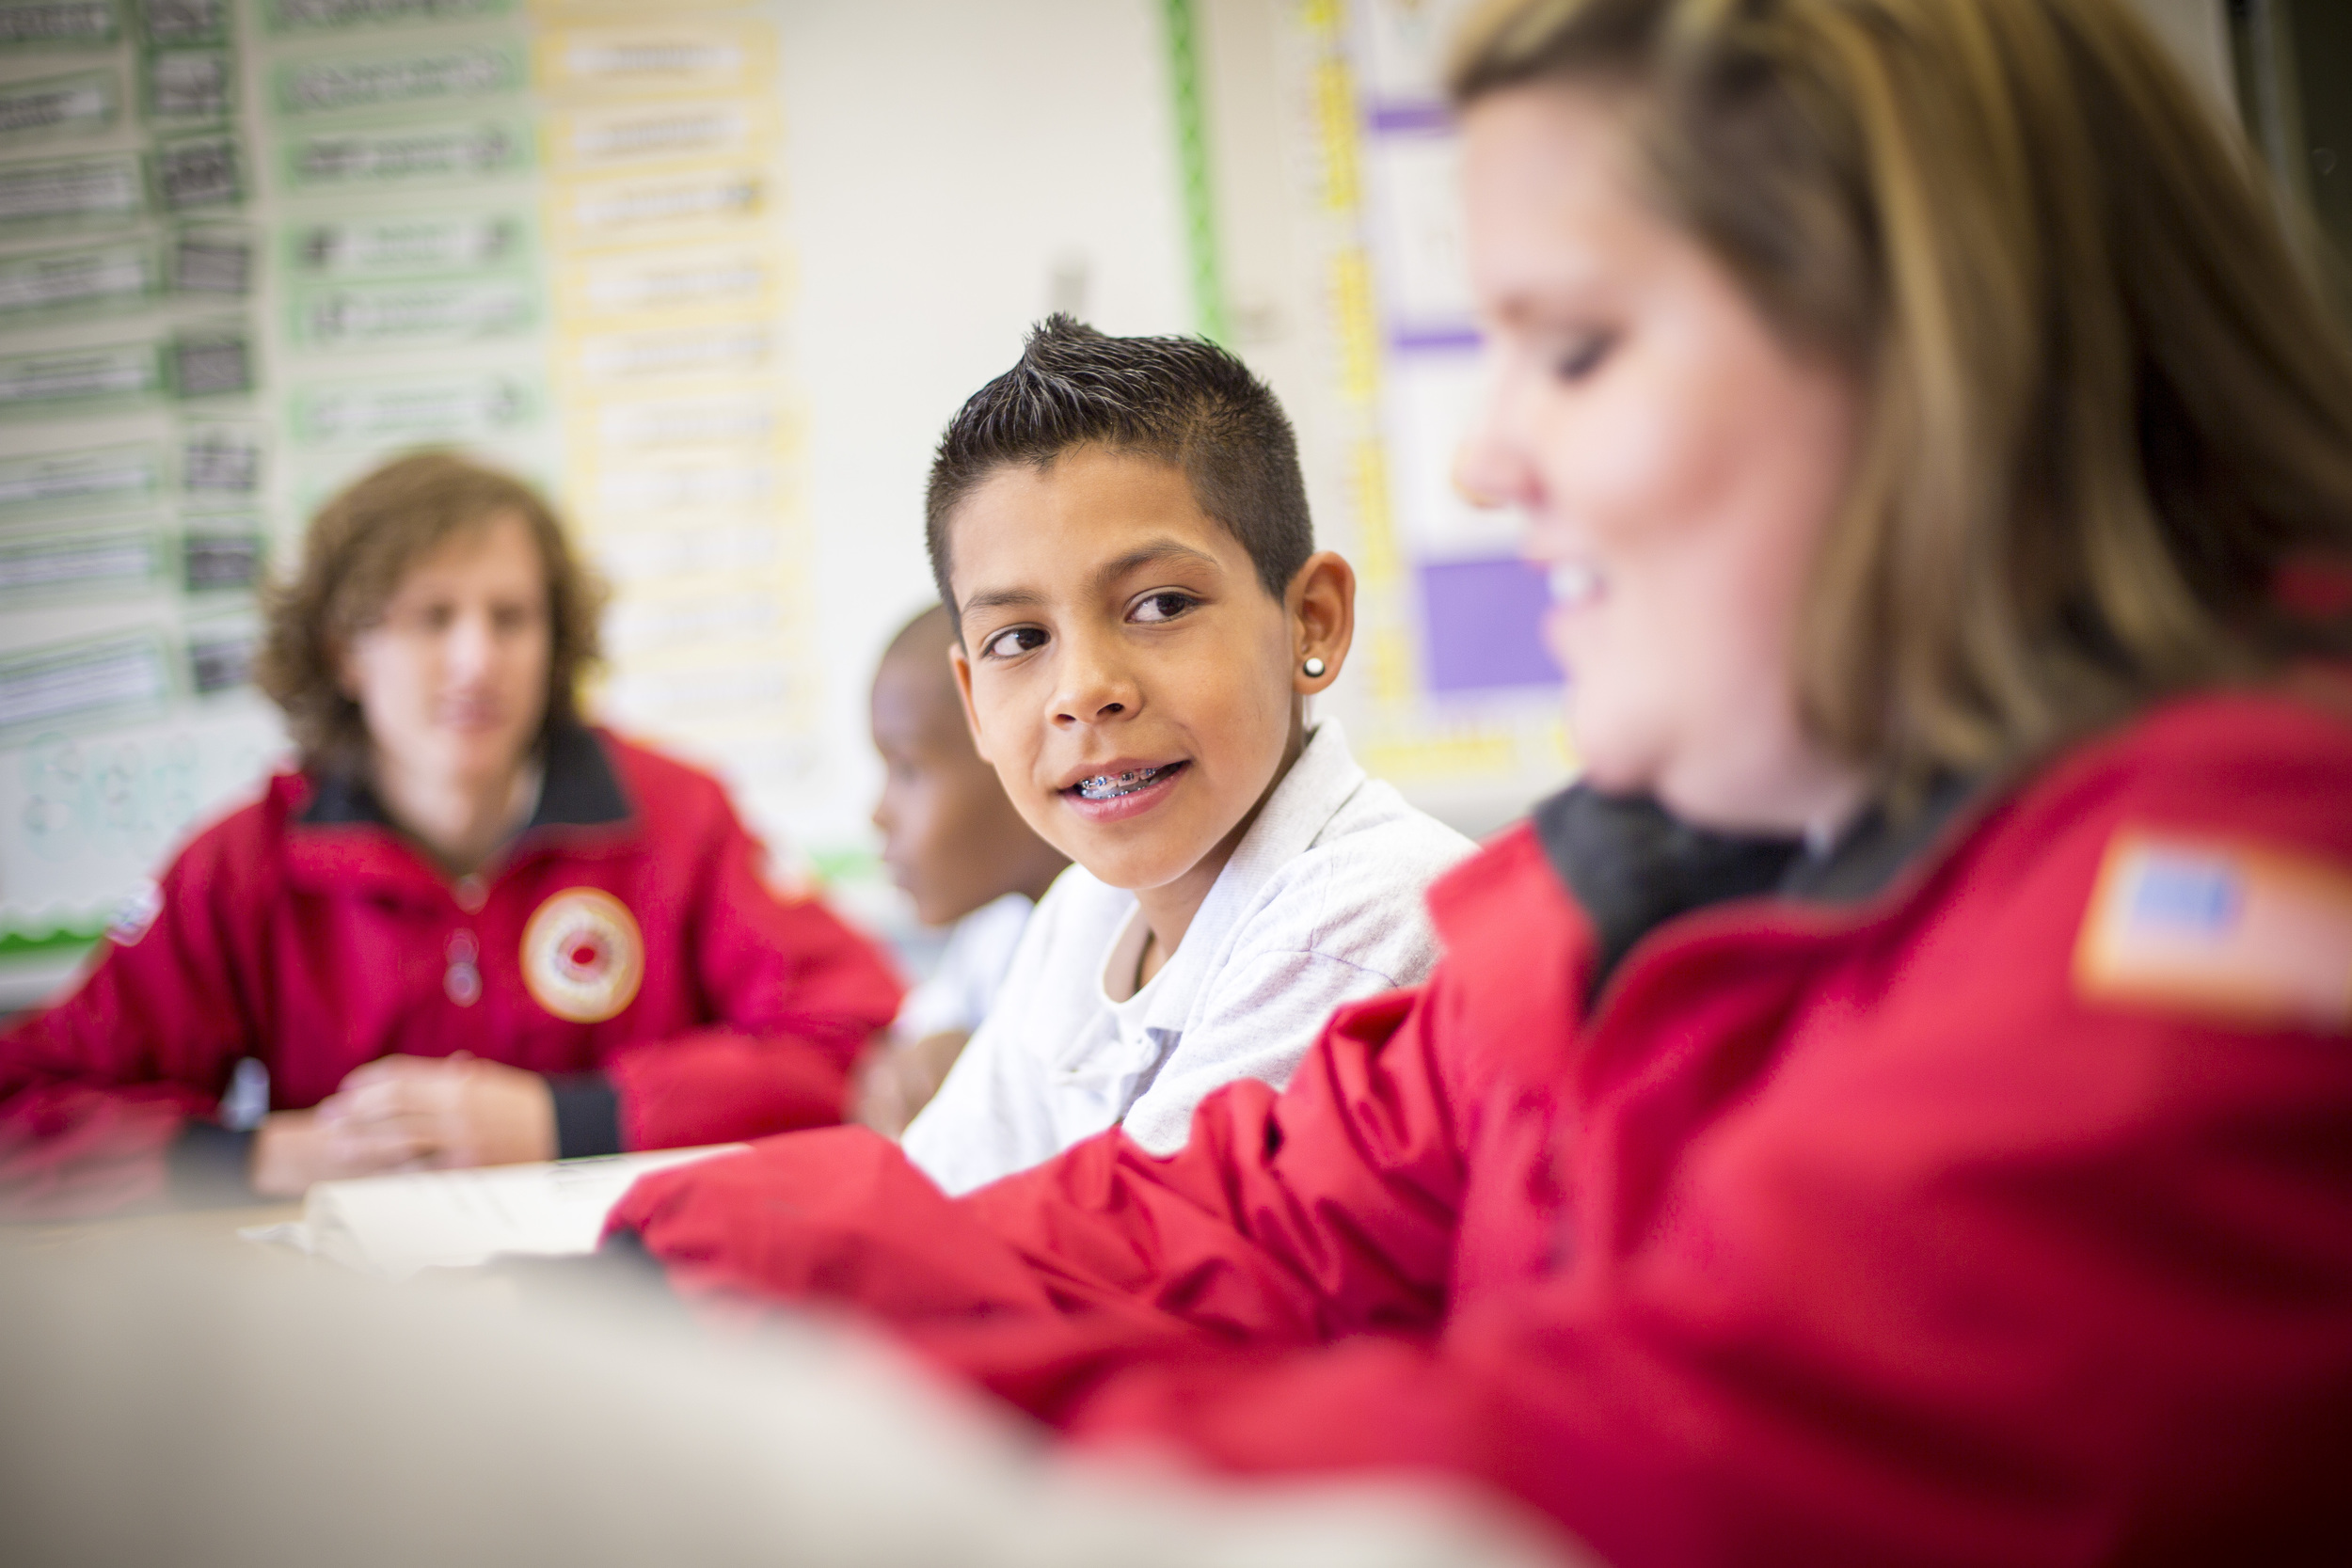 InSchool-makebetterhappen-elliothaney-2.JPG